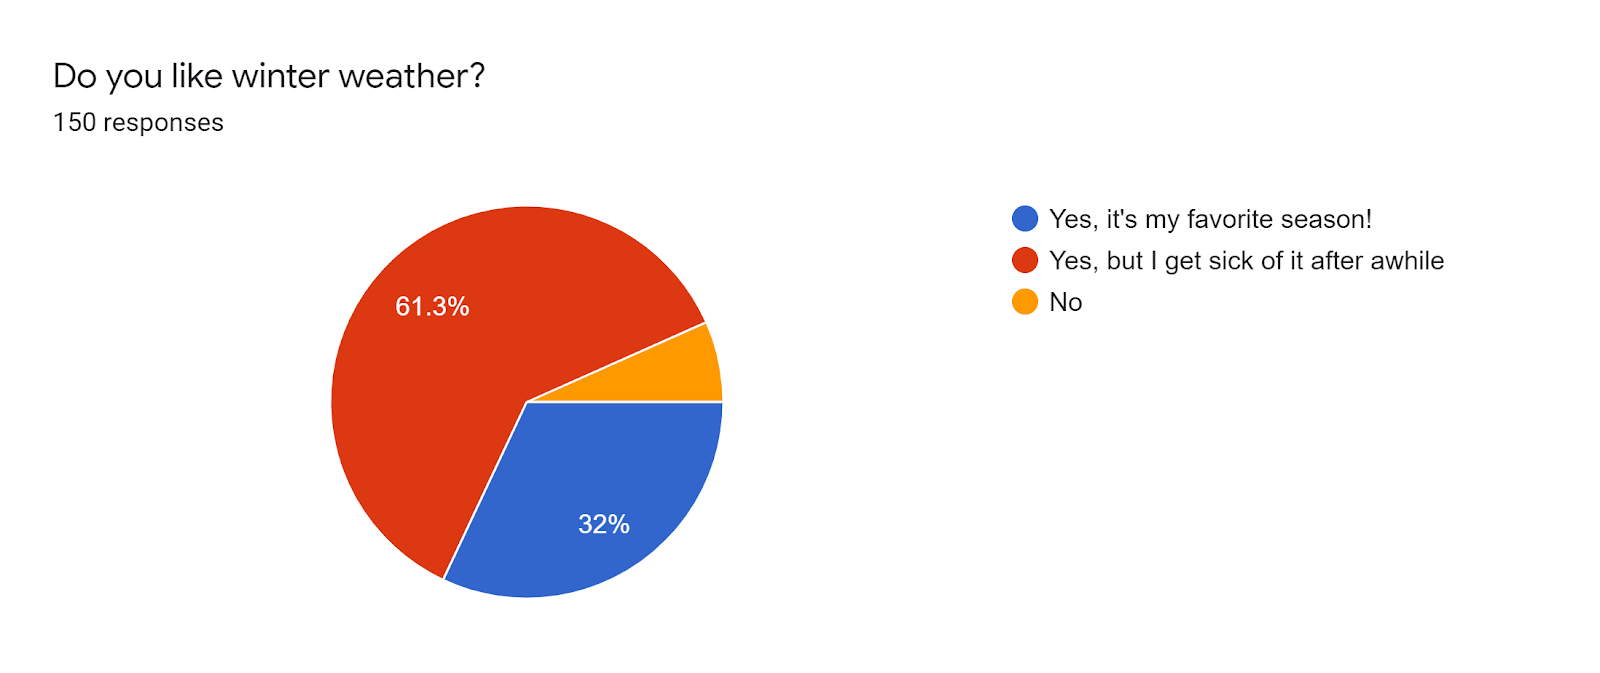 Forms response chart. Question title: Do you like winter weather?. Number of responses: 150 responses.